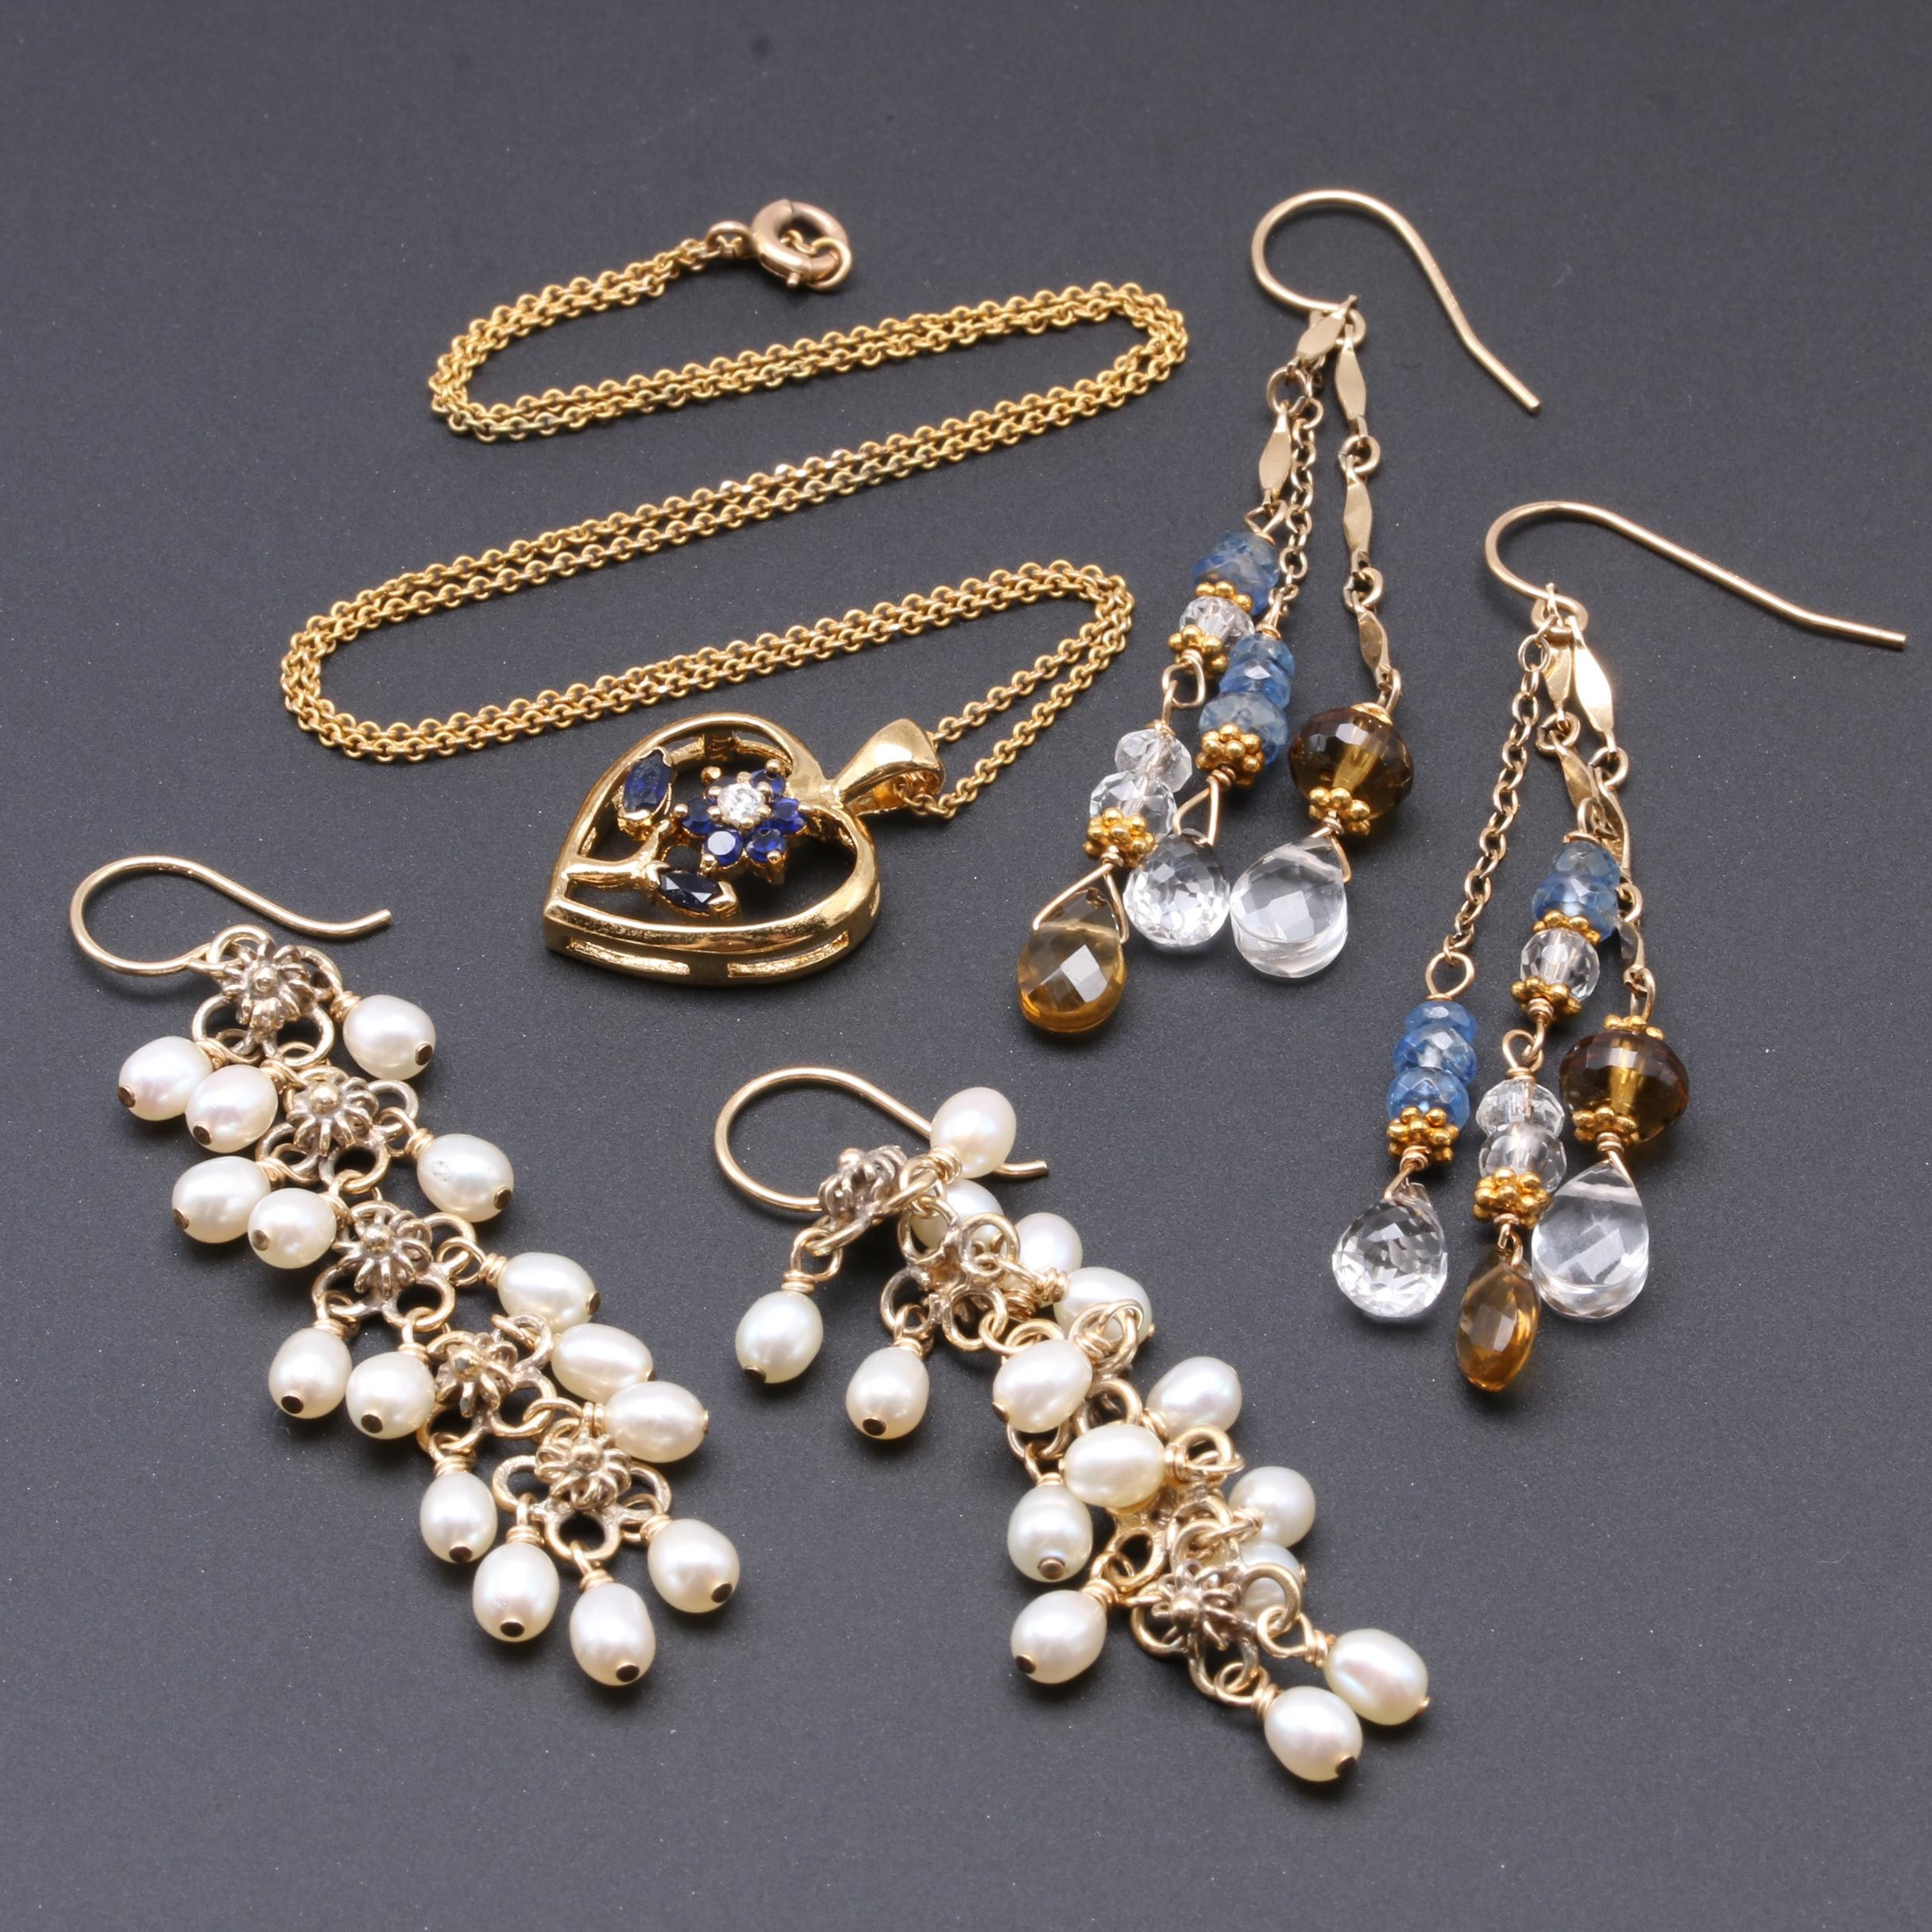 Drop Earrings and Sapphire Heart Pendant Necklace with Mixed Gold Elements